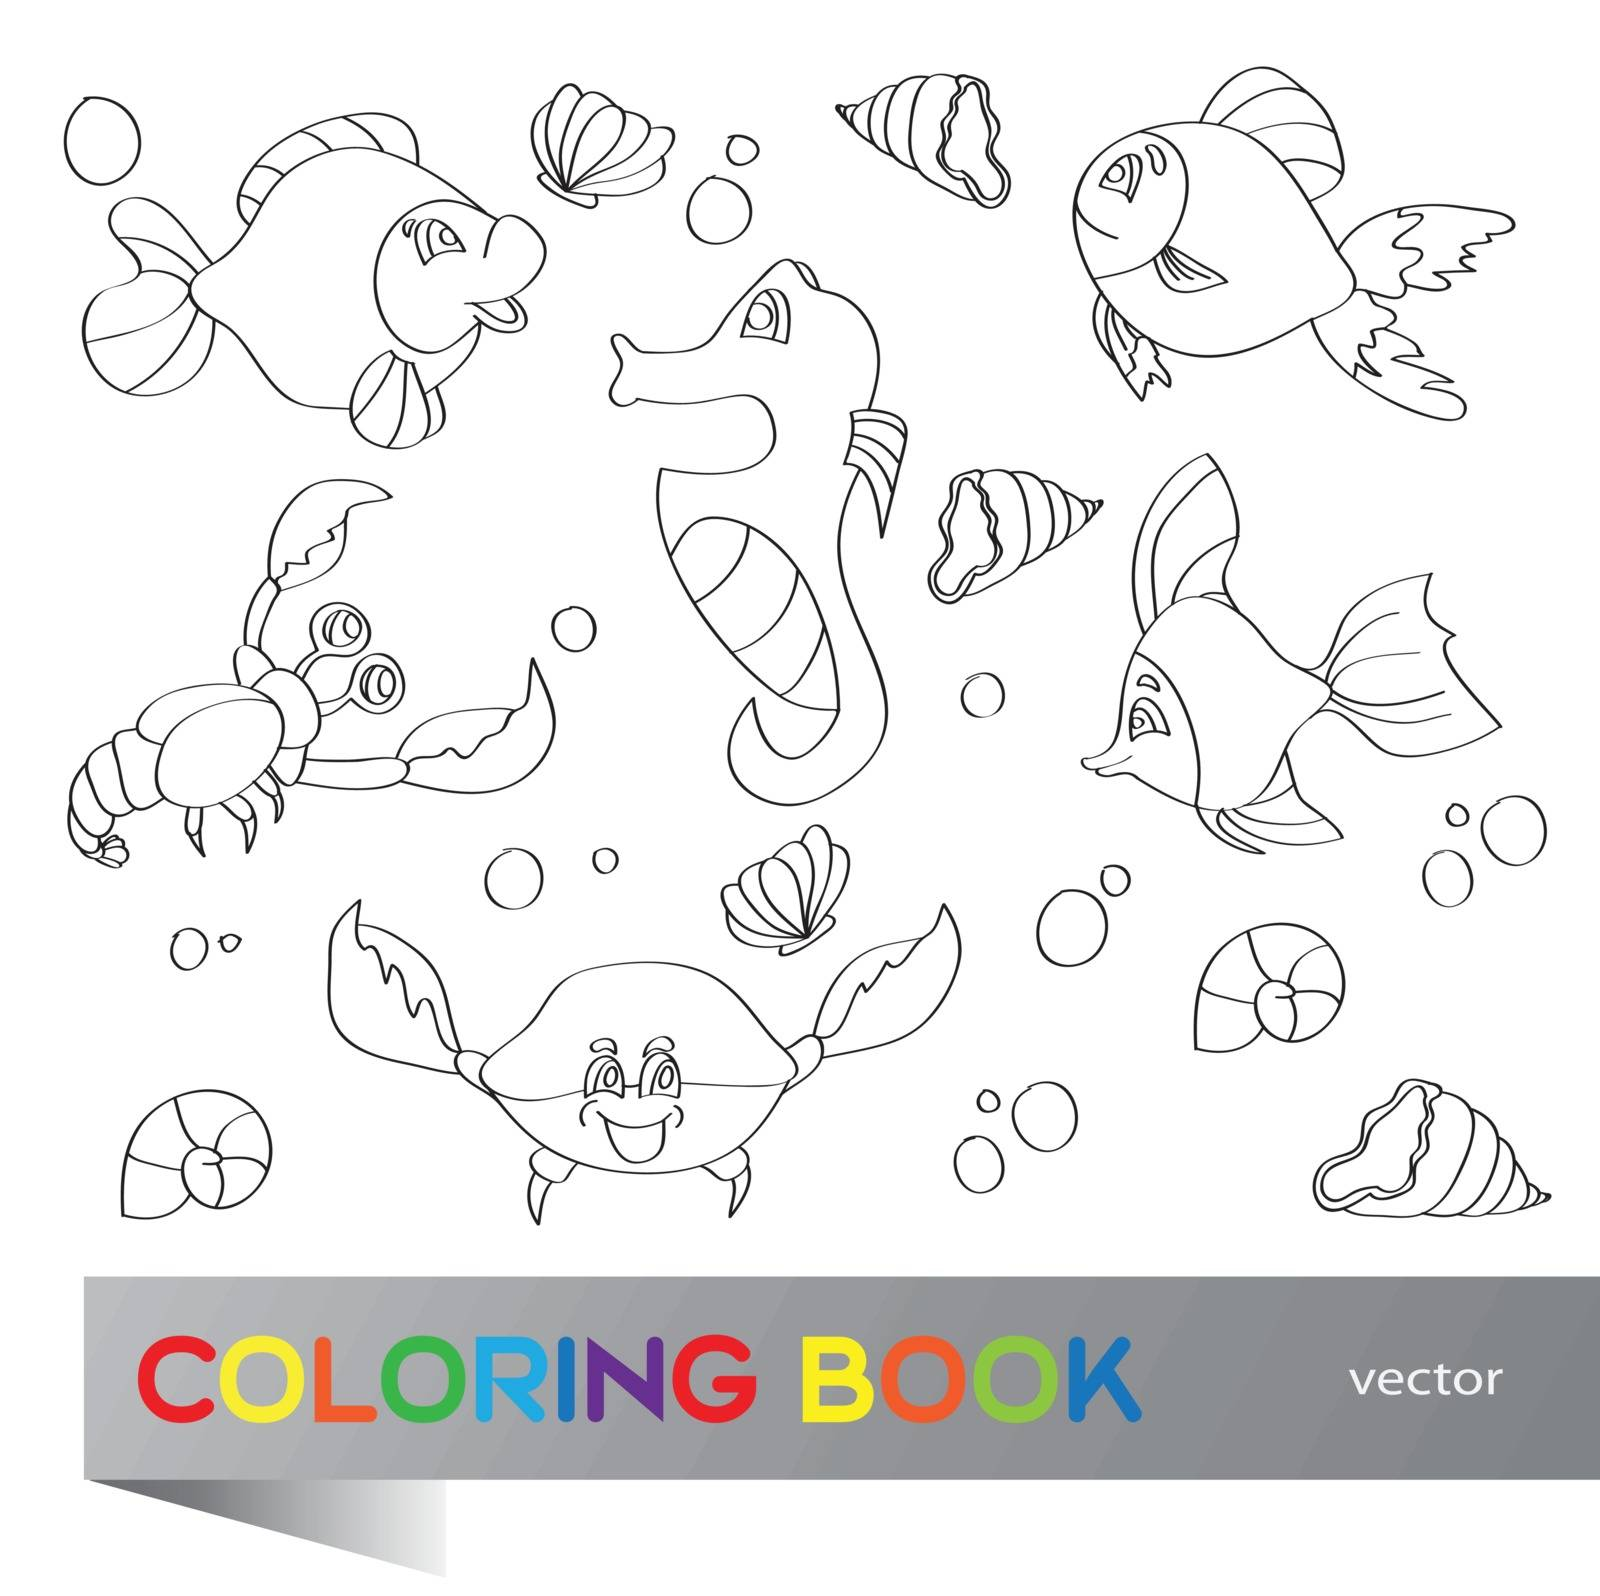 Coloring book - set of images of the marine life